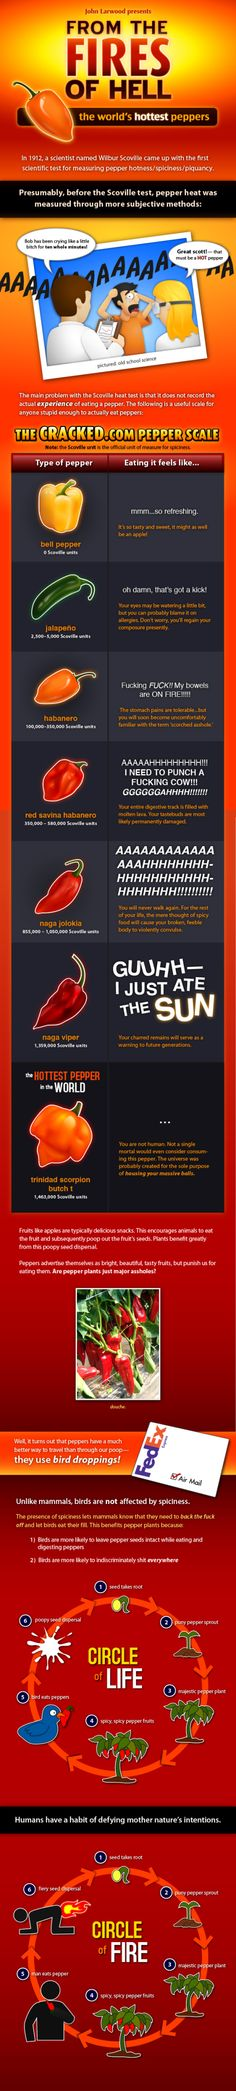 The world's hottest peppers!